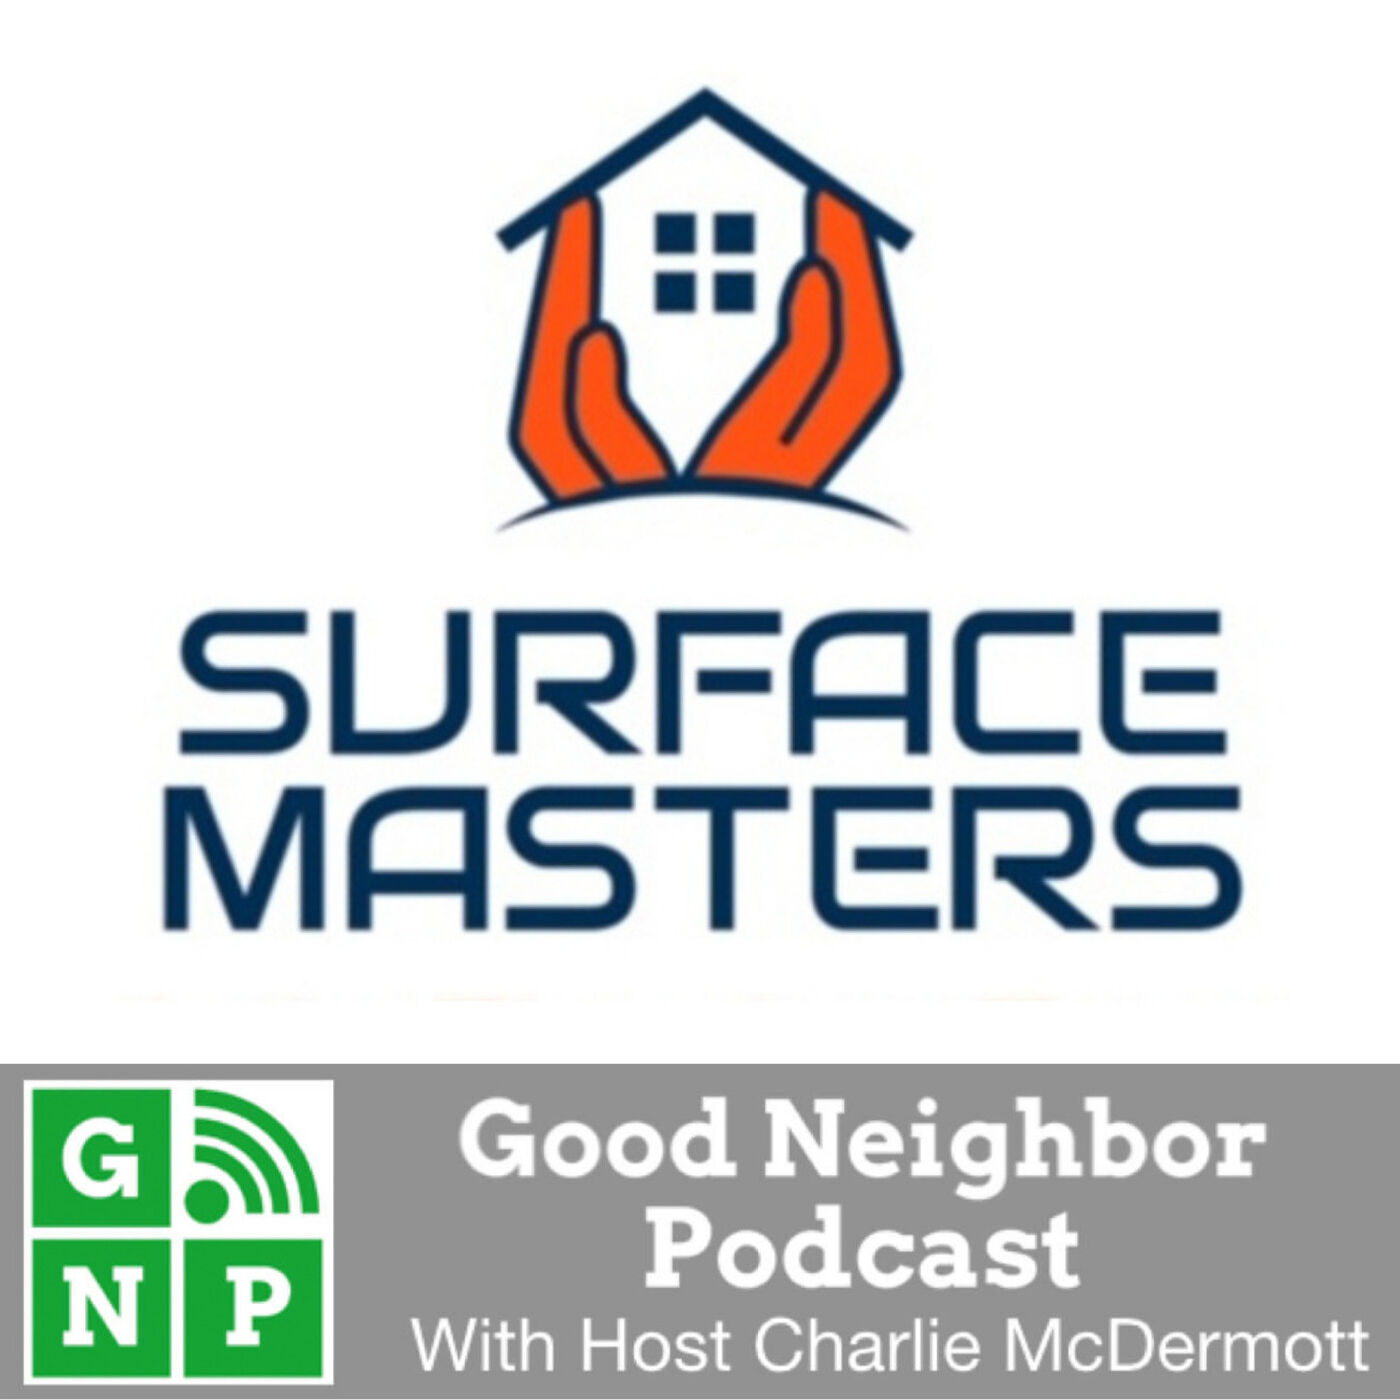 EP #490: Surface Masters with Shawn & Daniel McCrillis